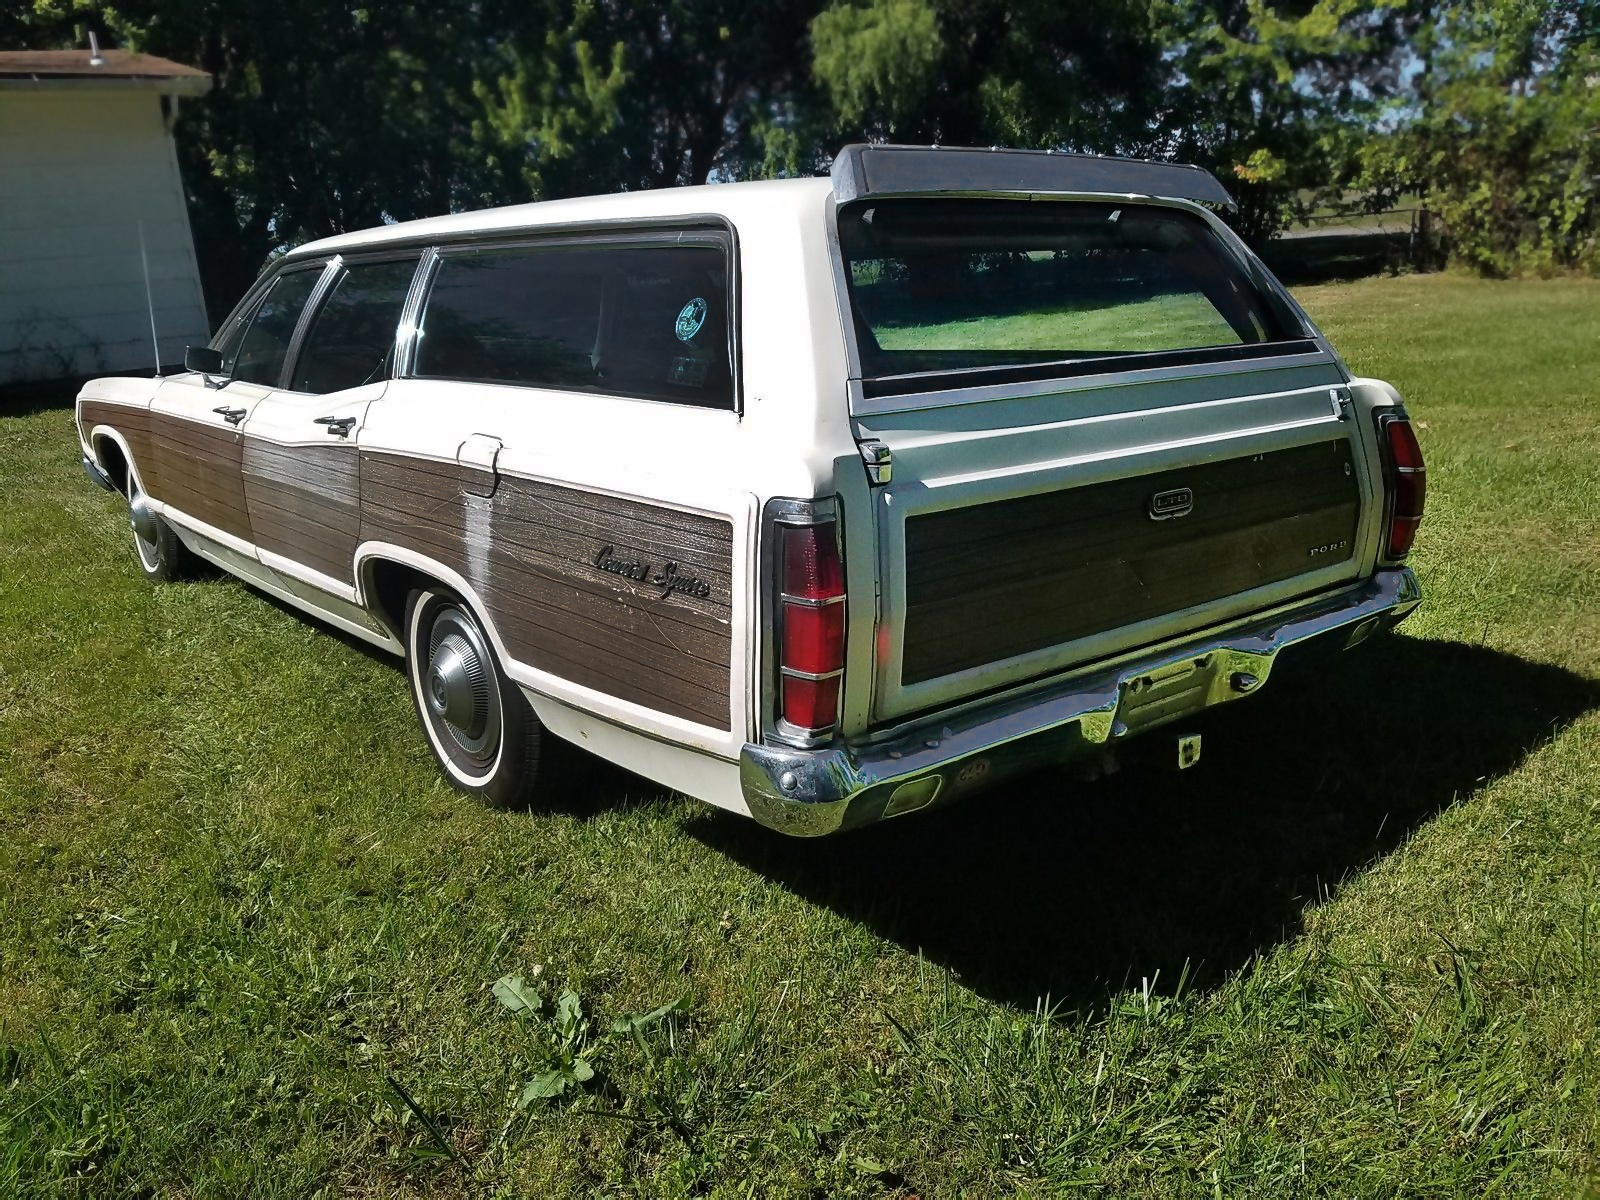 Wagons Ho! 1969 Ford LTD Country Squire